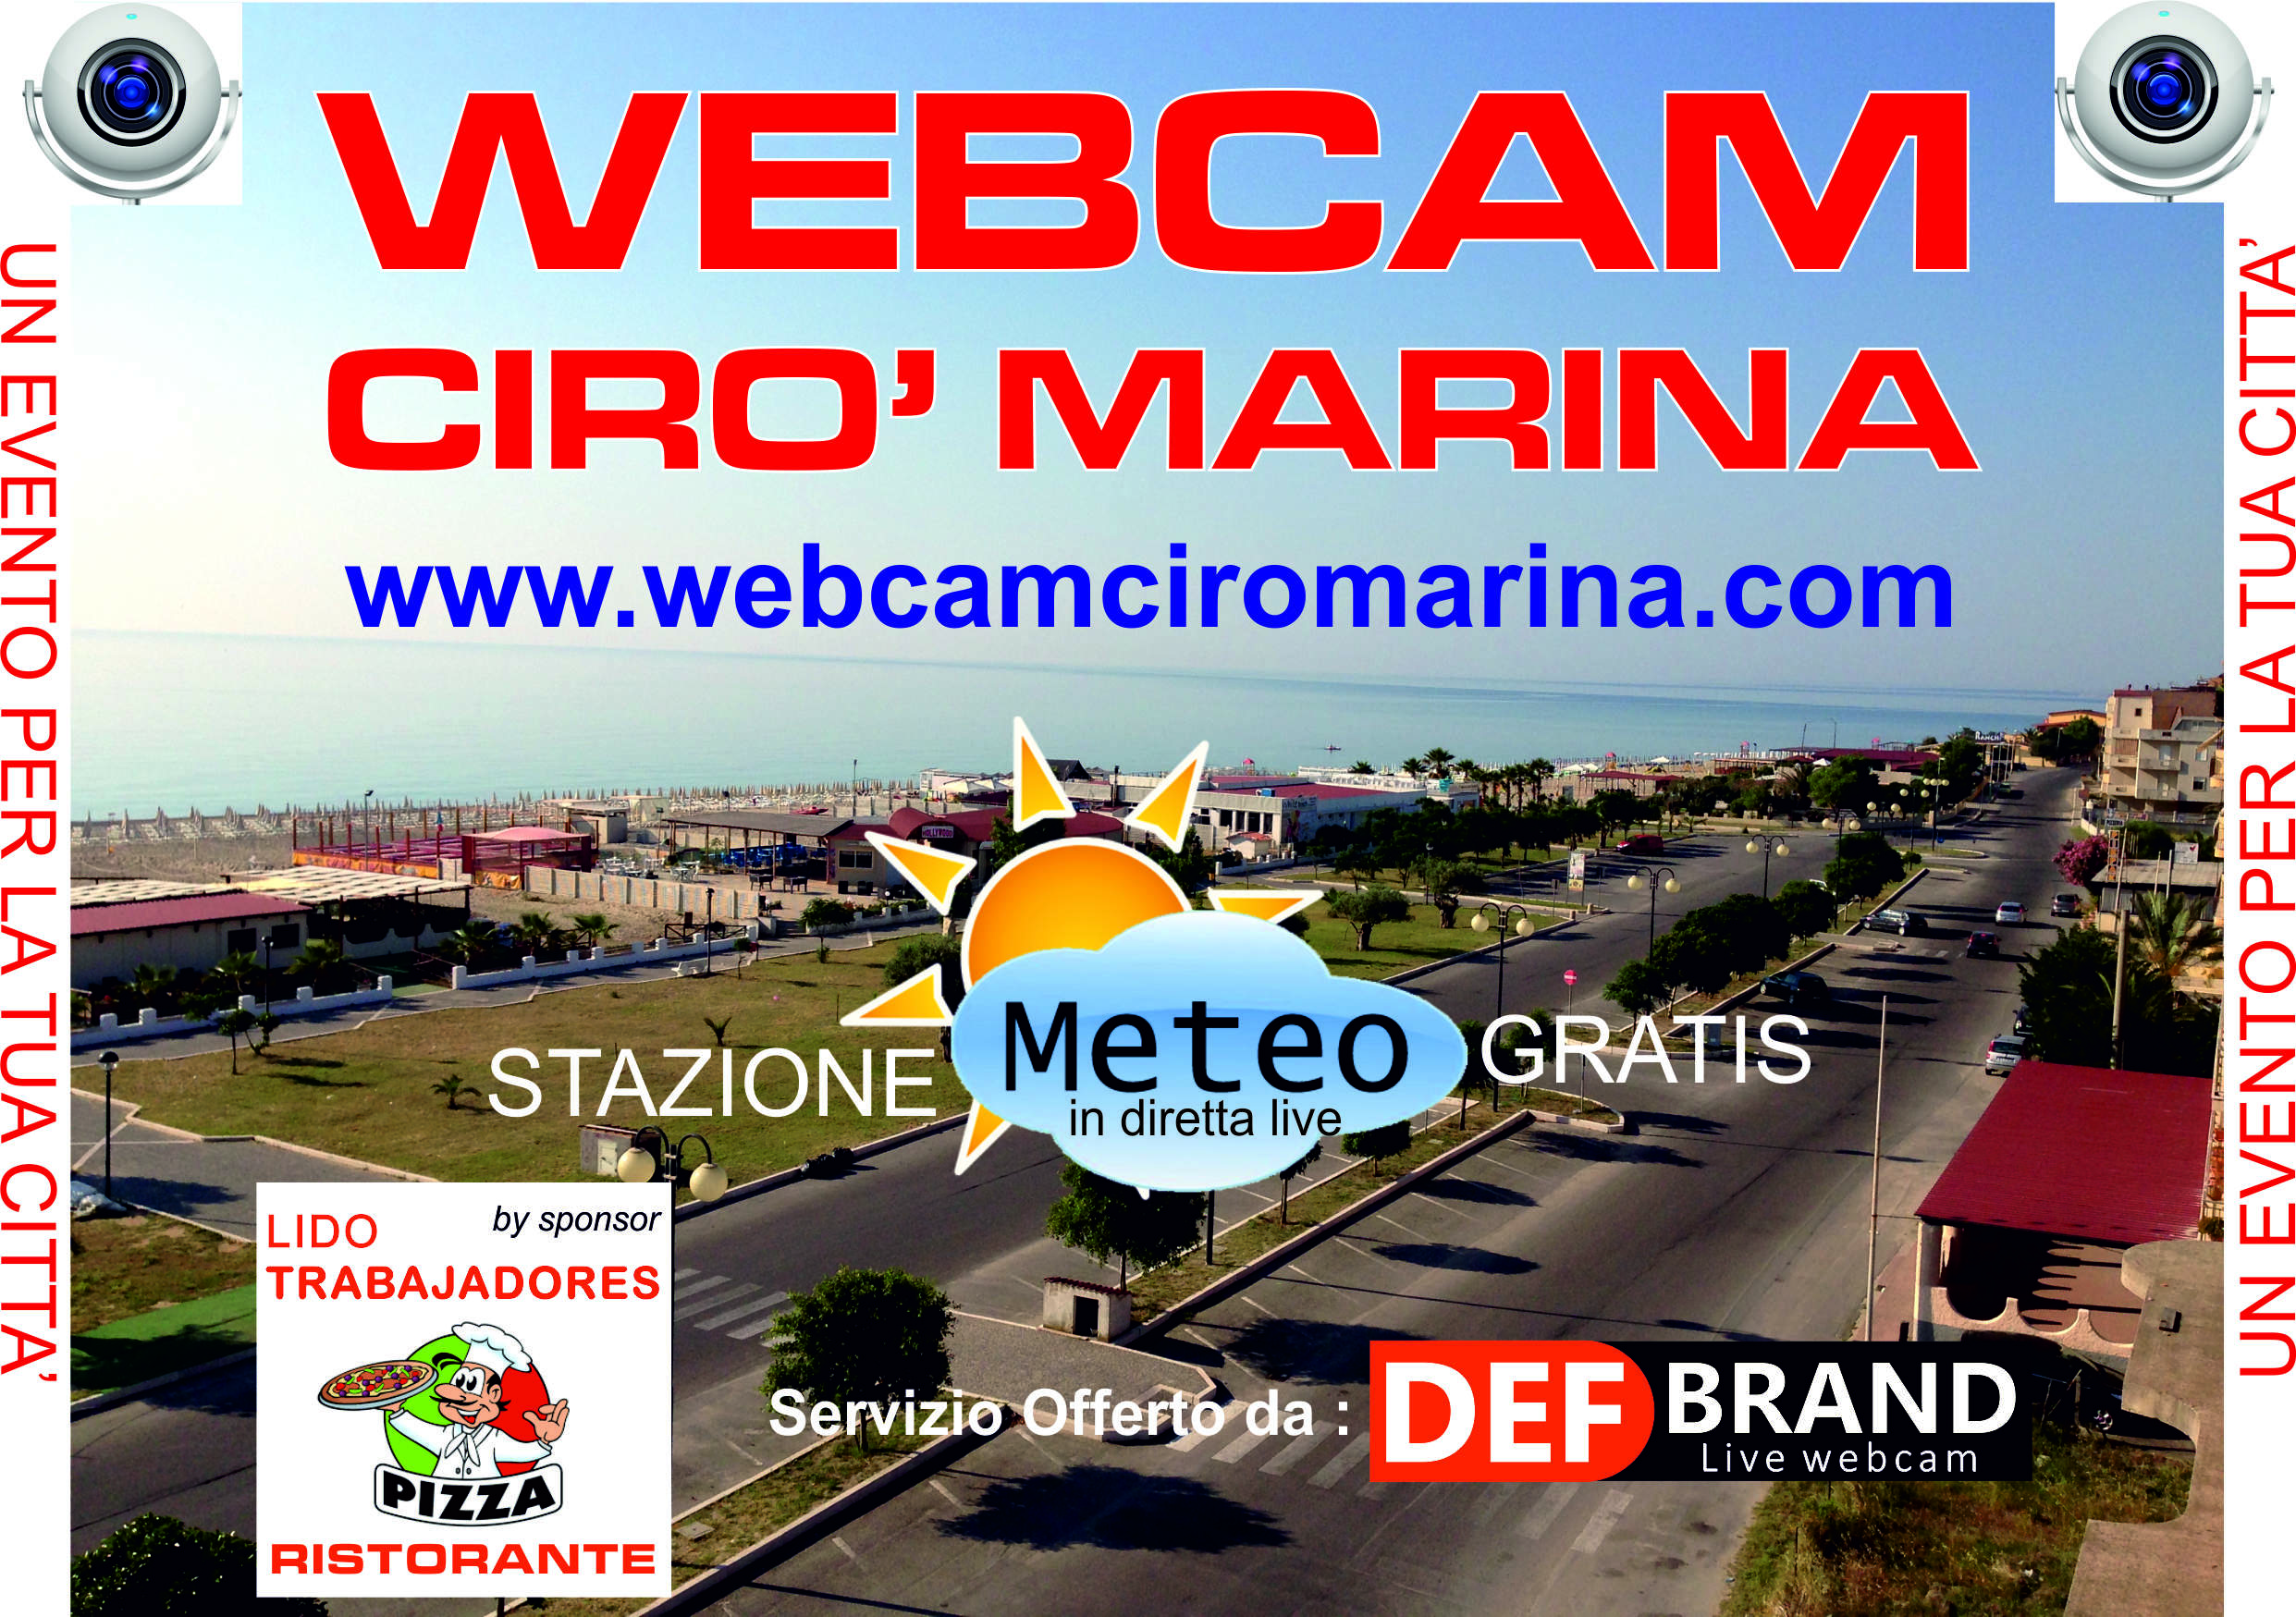 webcam cirò marina